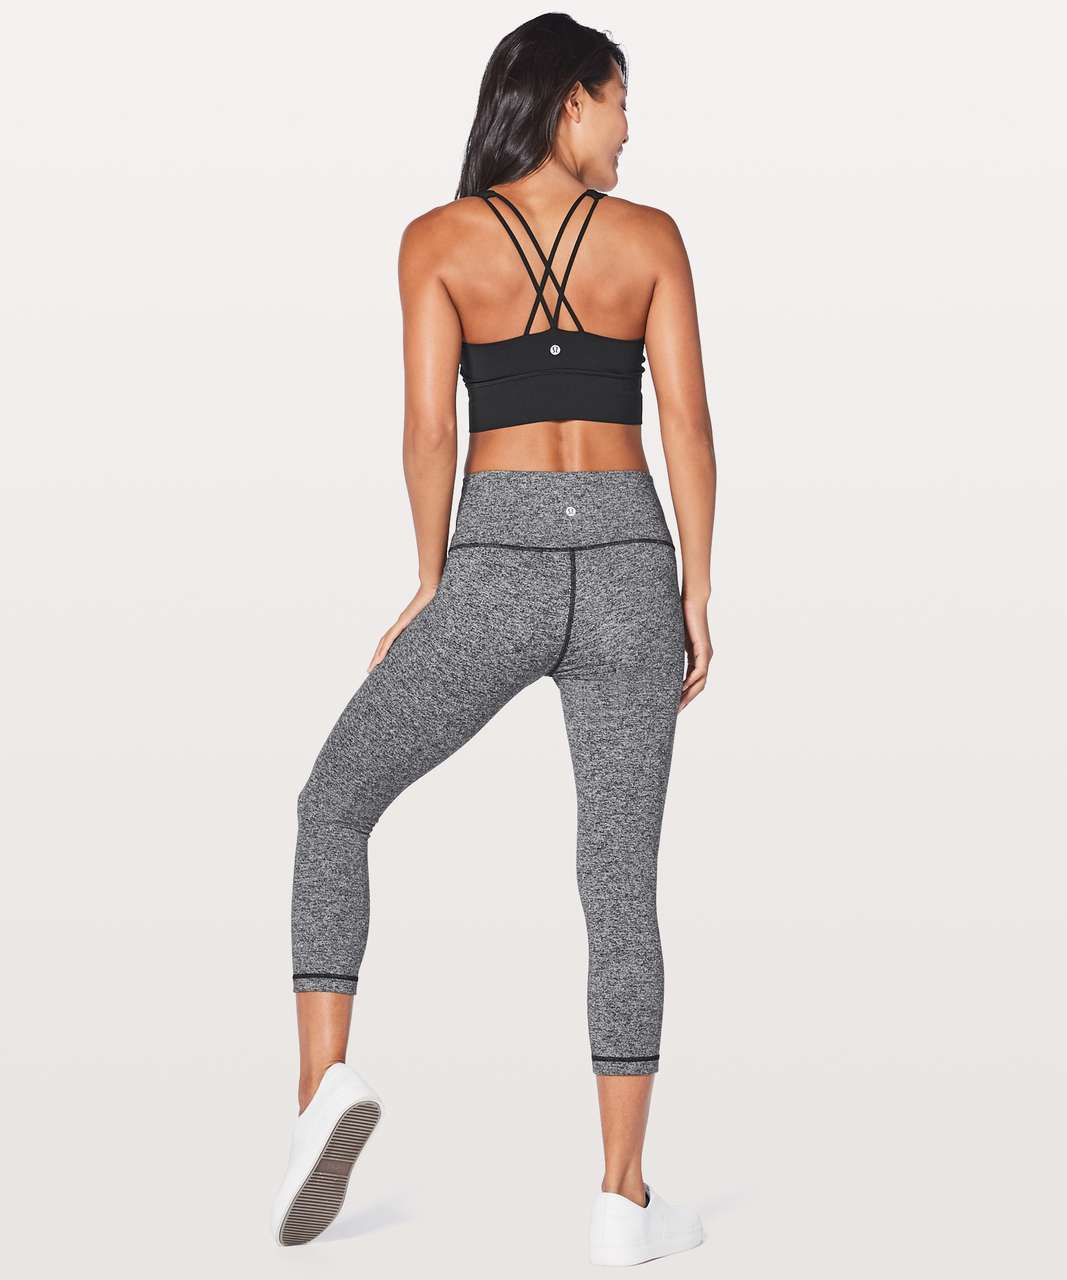 Lululemon Free To Be Bra Long Line - Black